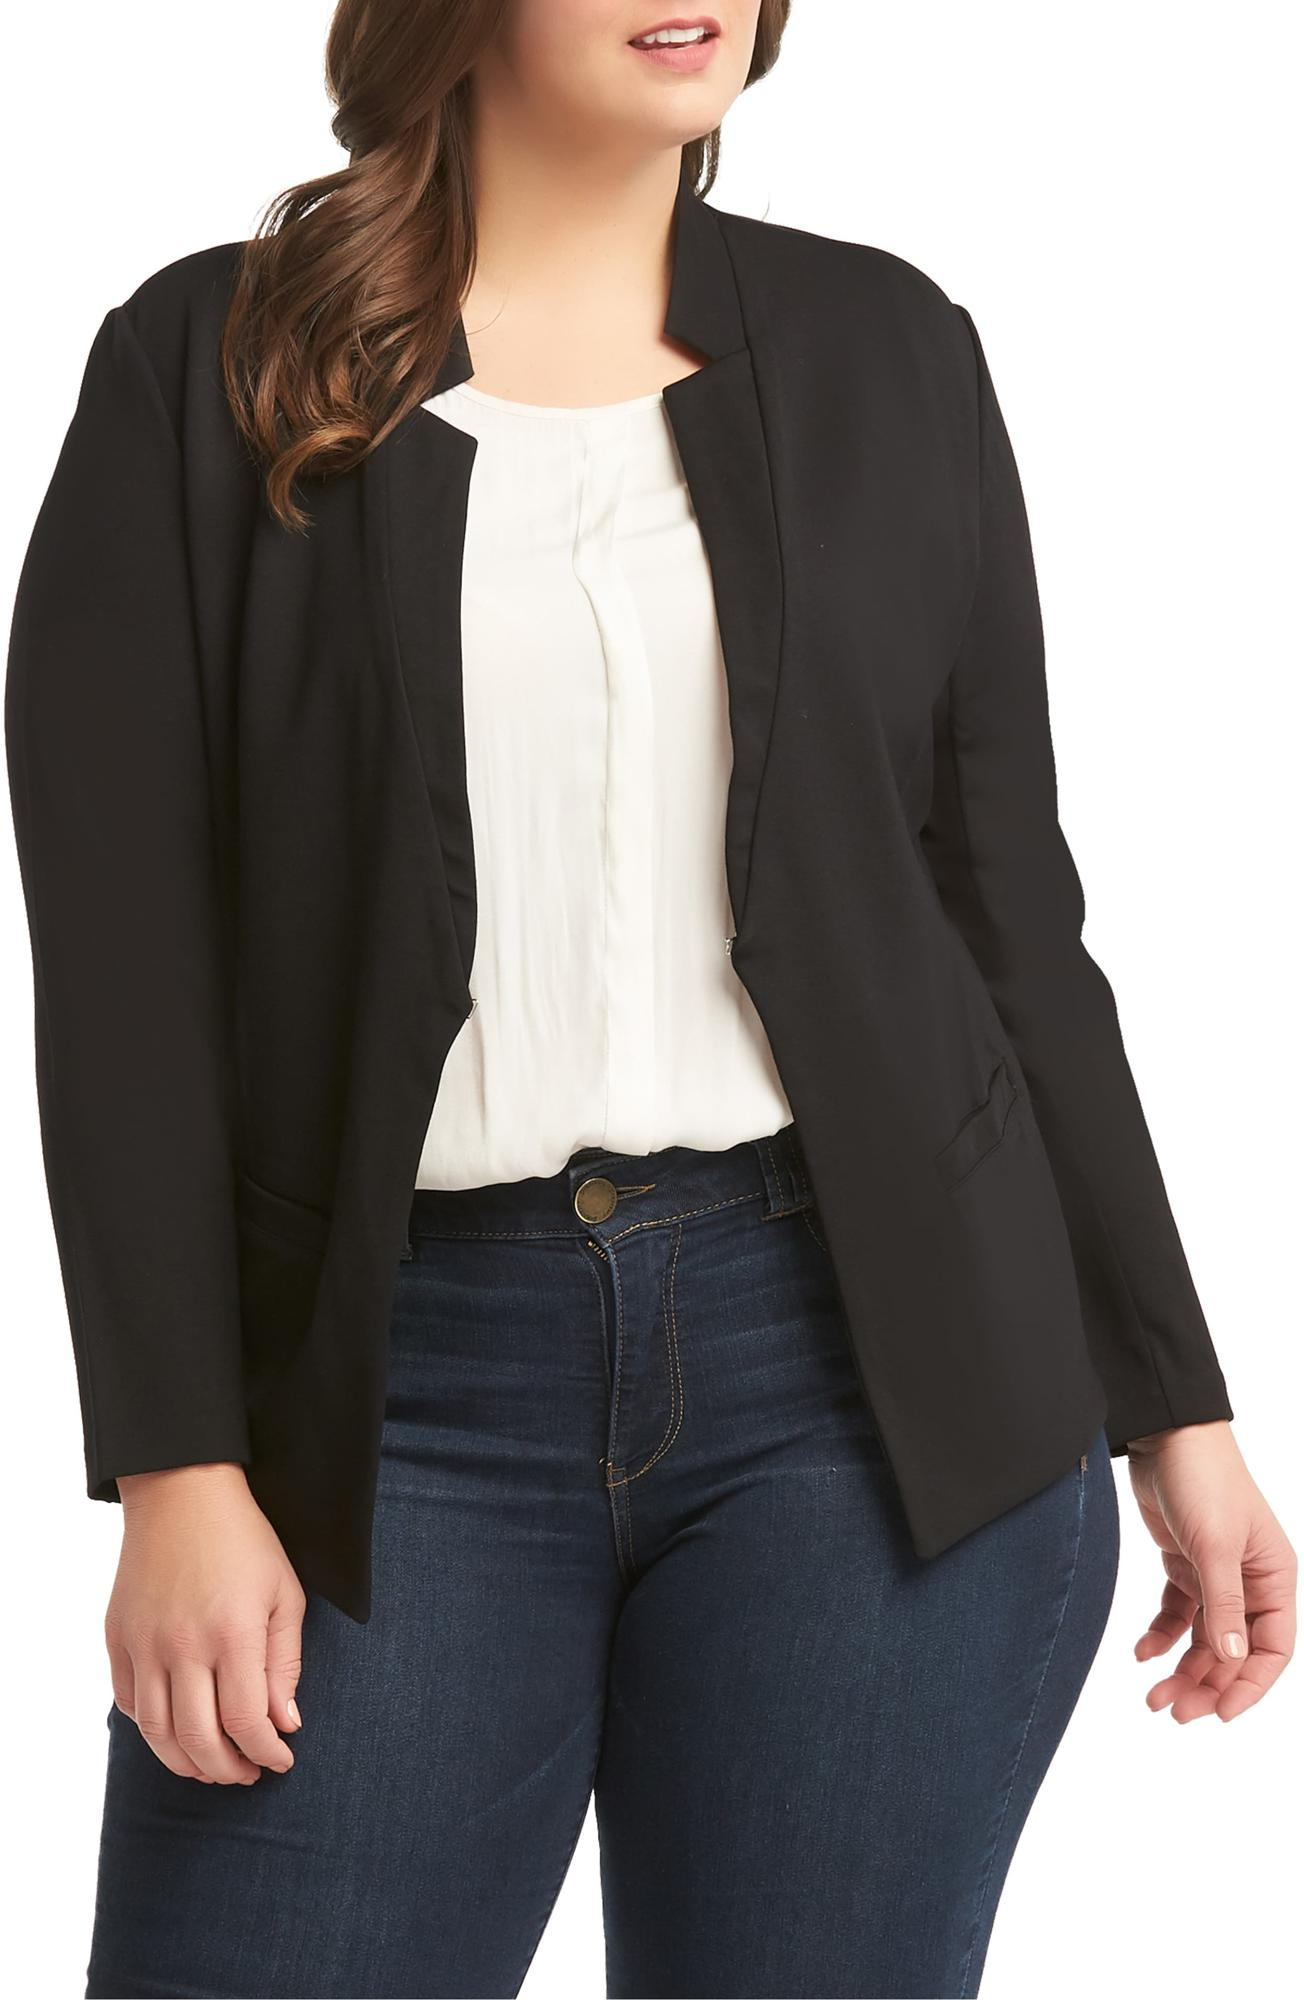 rent business professional clothing